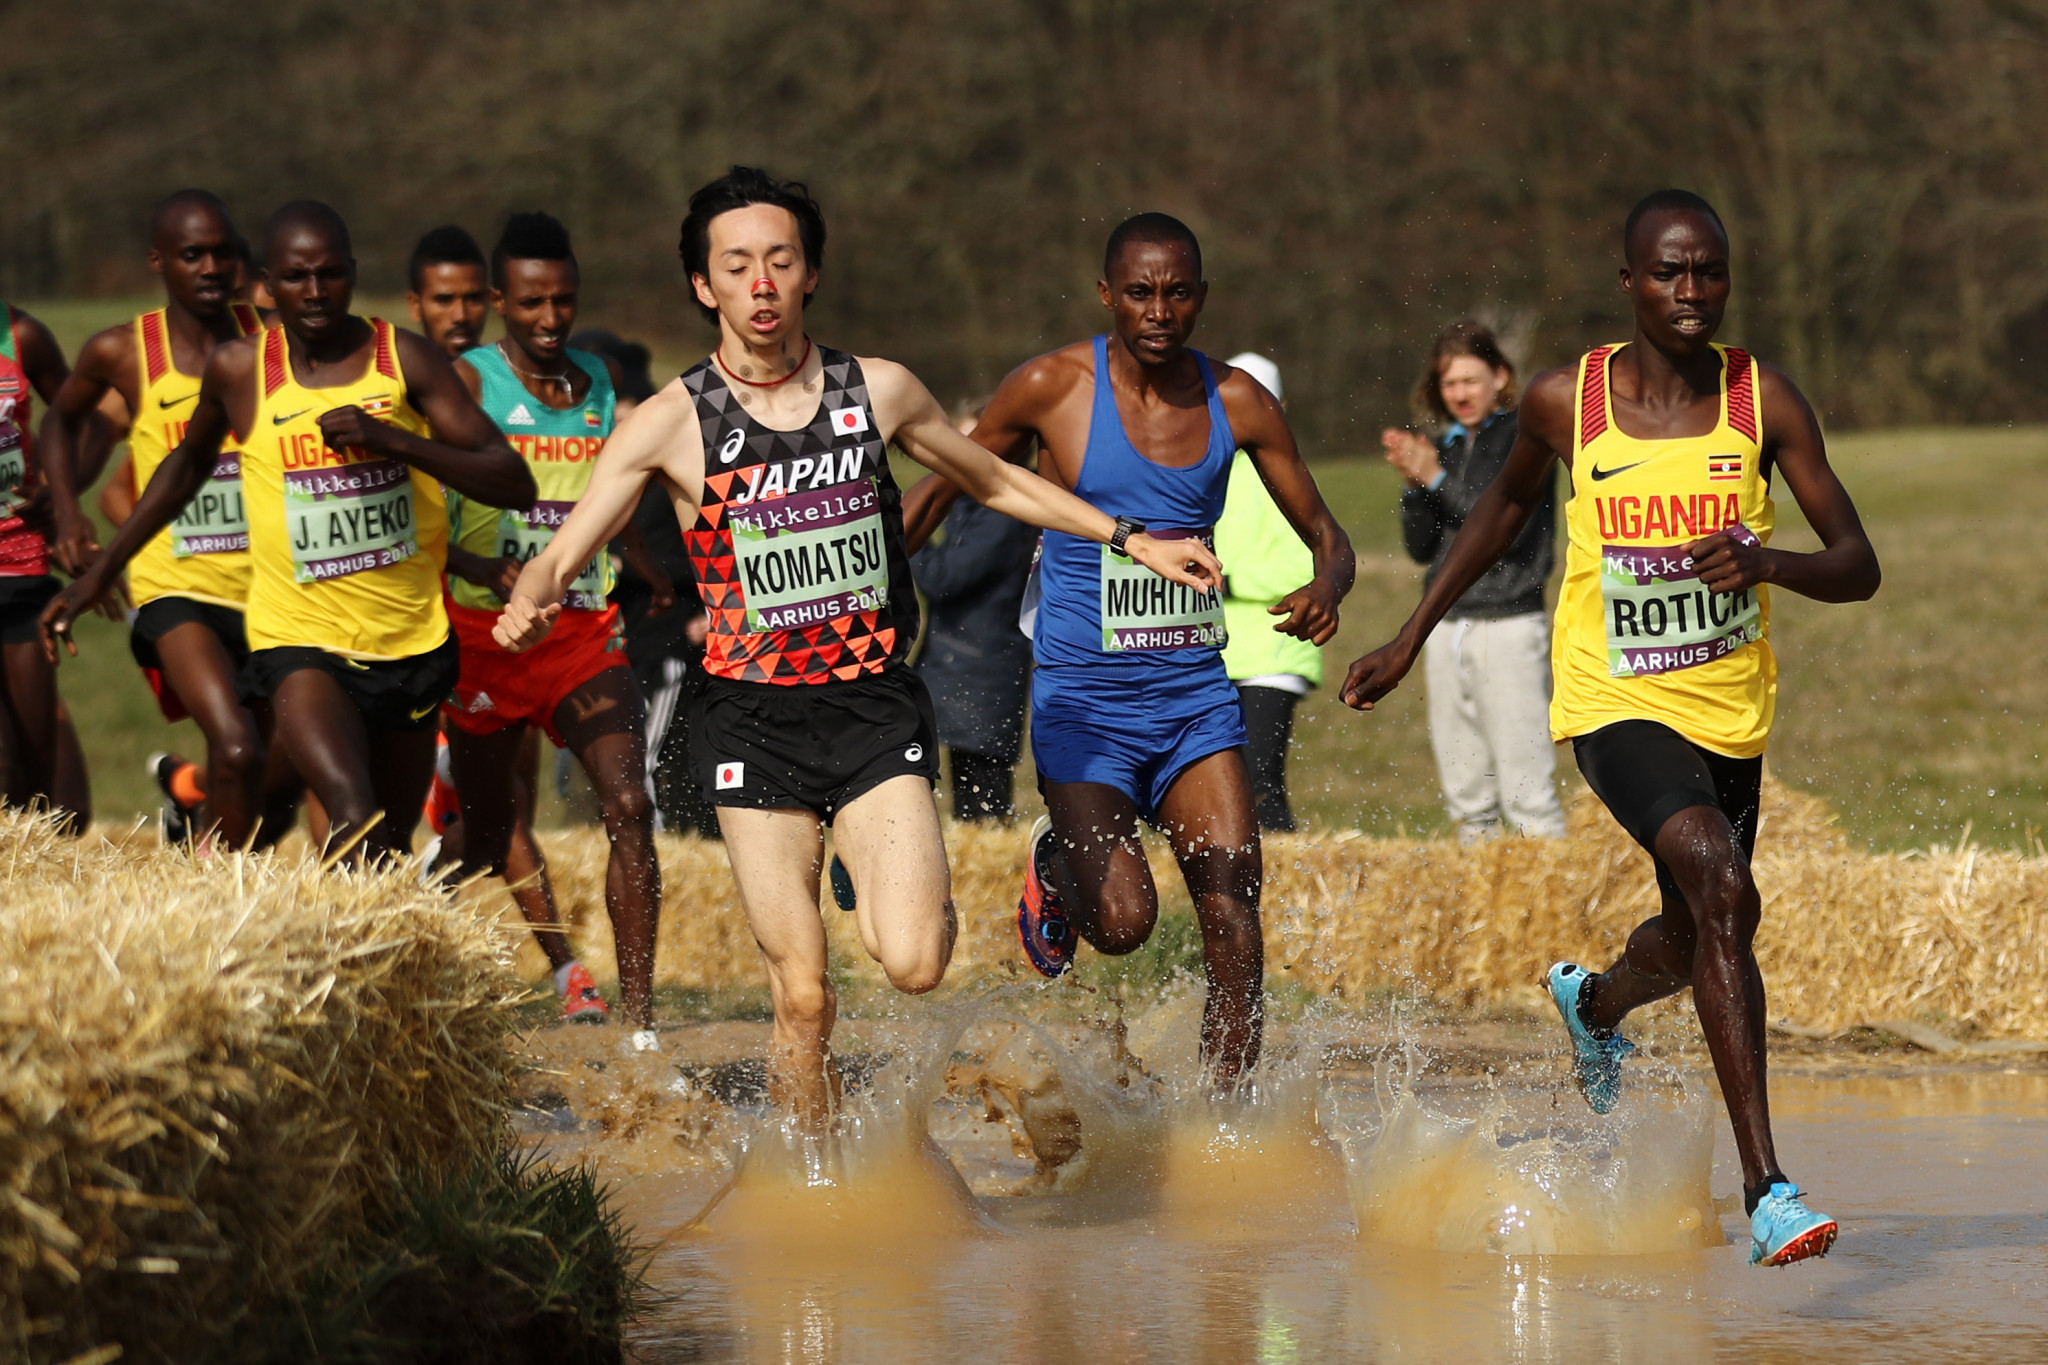 World Athletics to push for inclusion of cross country mixed relay at Paris 2024